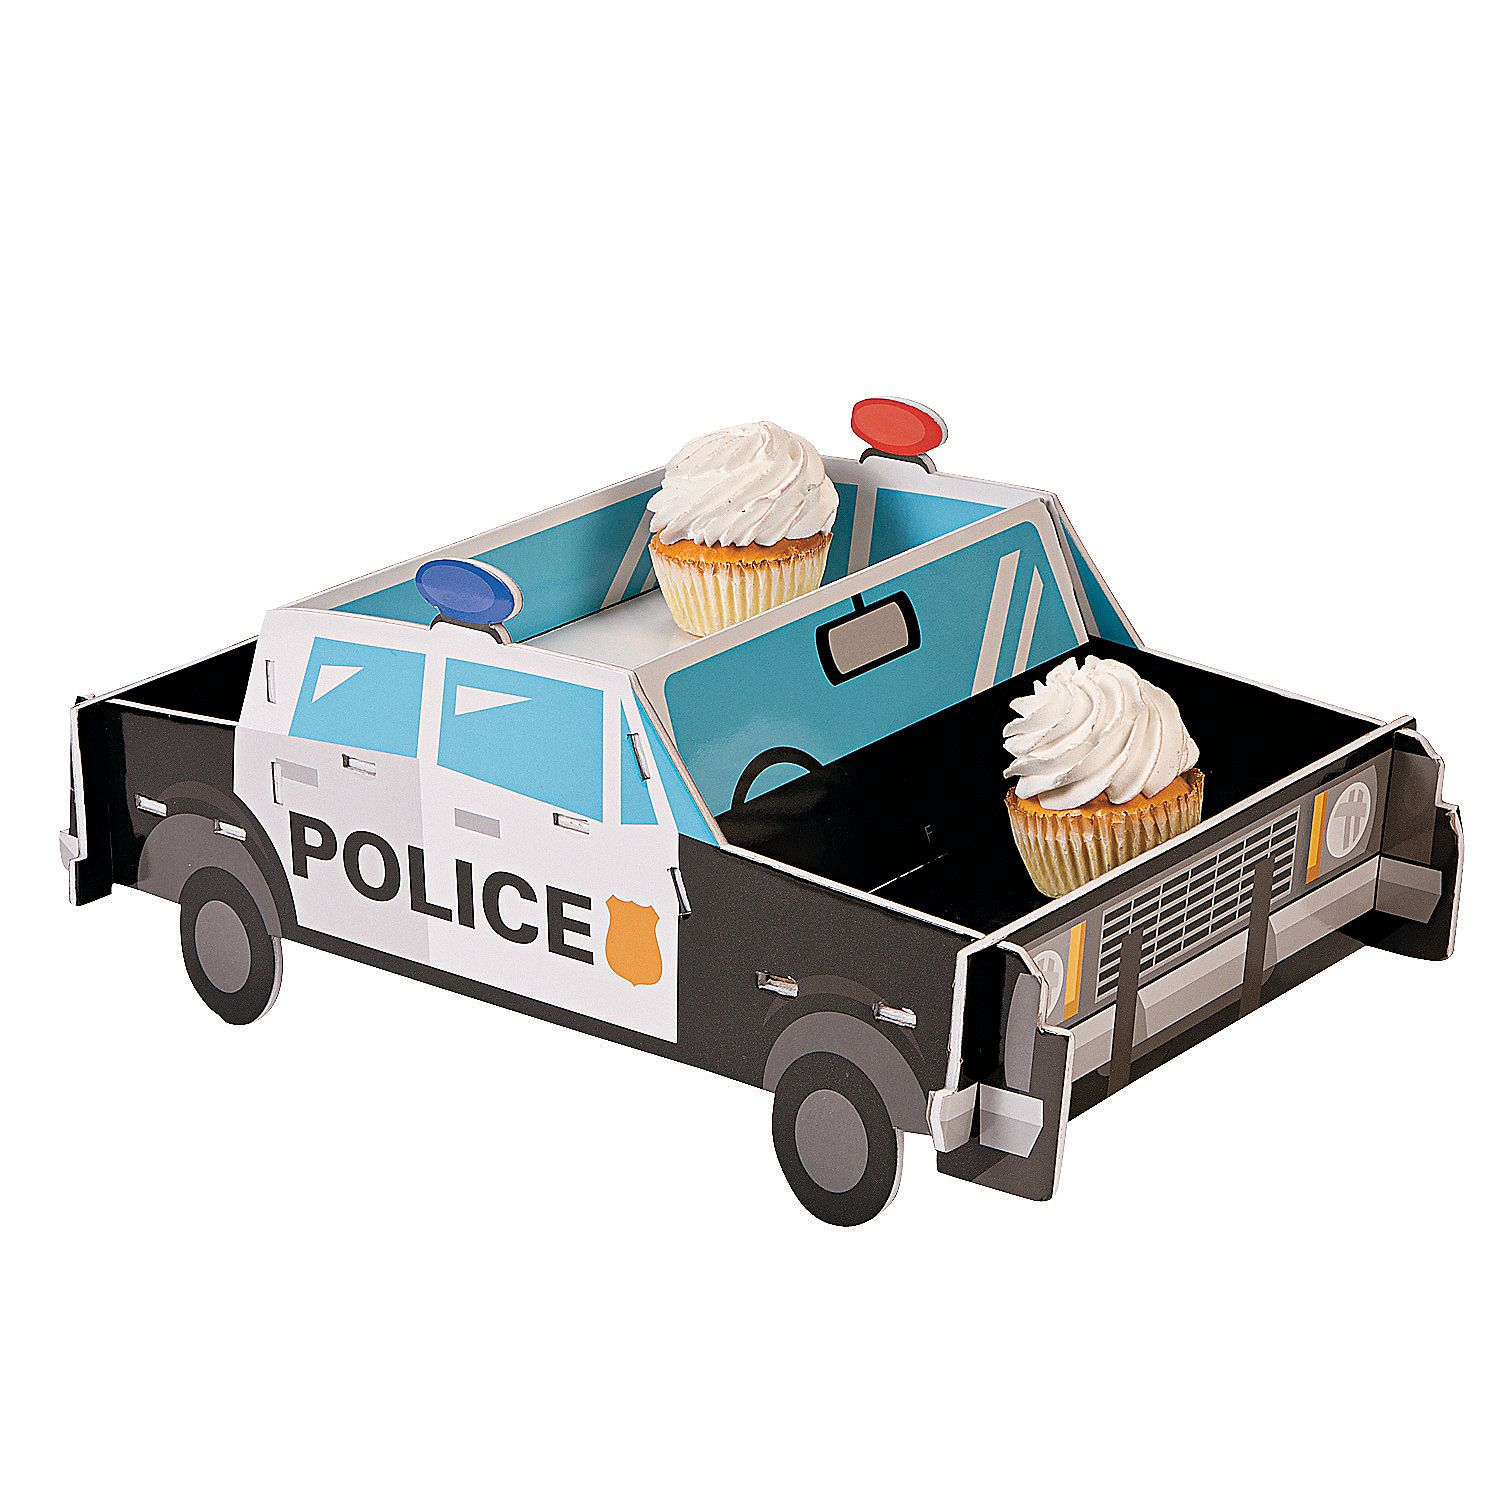 Police Party Cupcake Holder - OrientalTrading.com